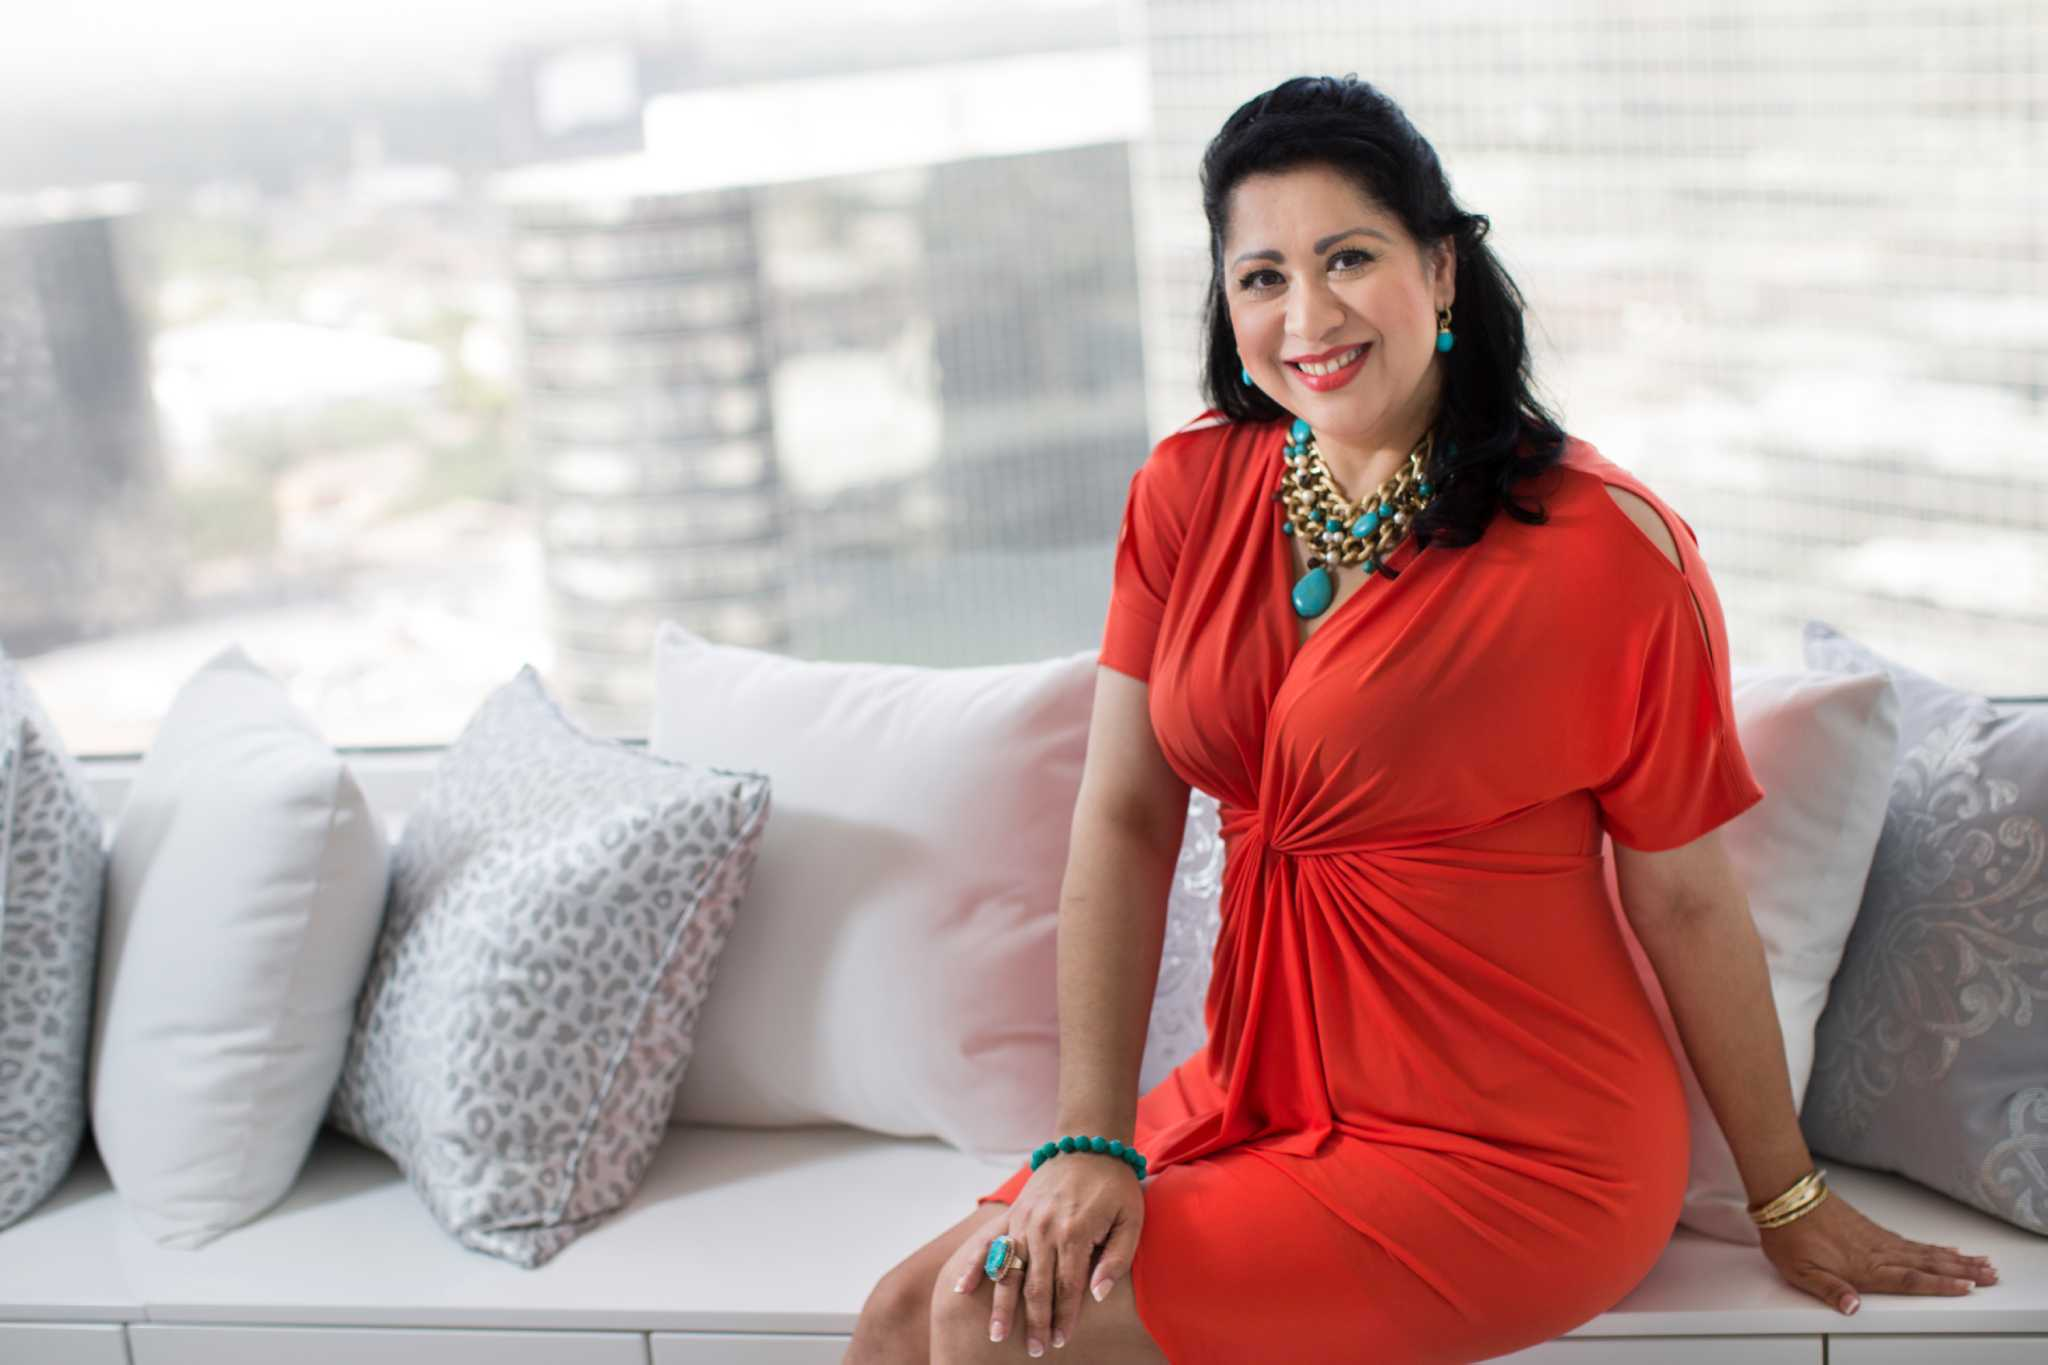 Hispanic Chamber CEO is about business - and style